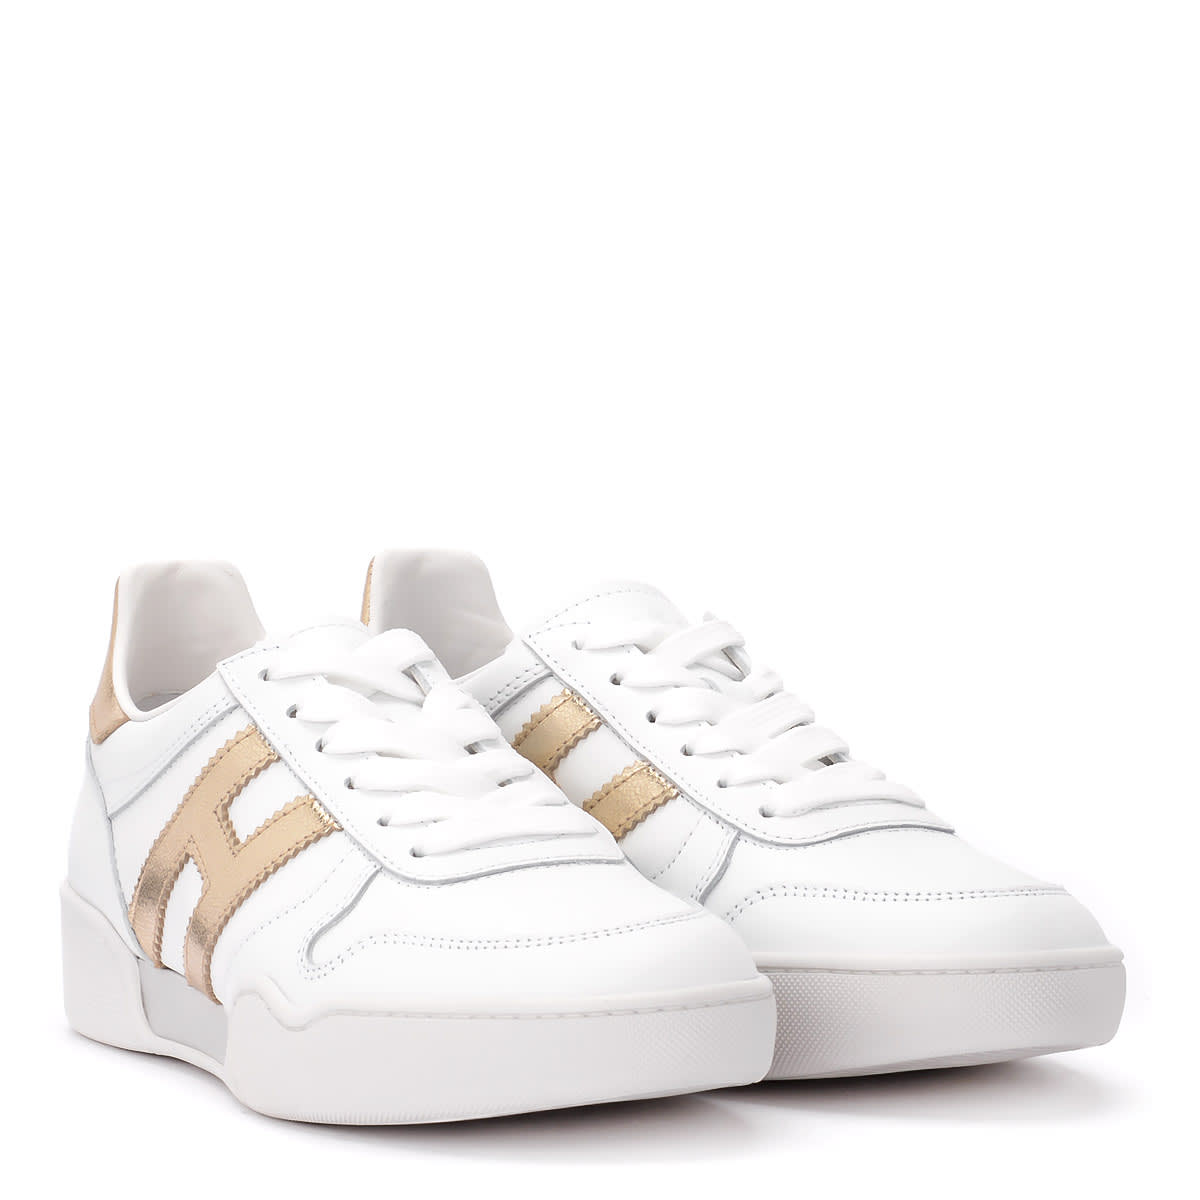 Hogan H357 white and gold leather sneaker.